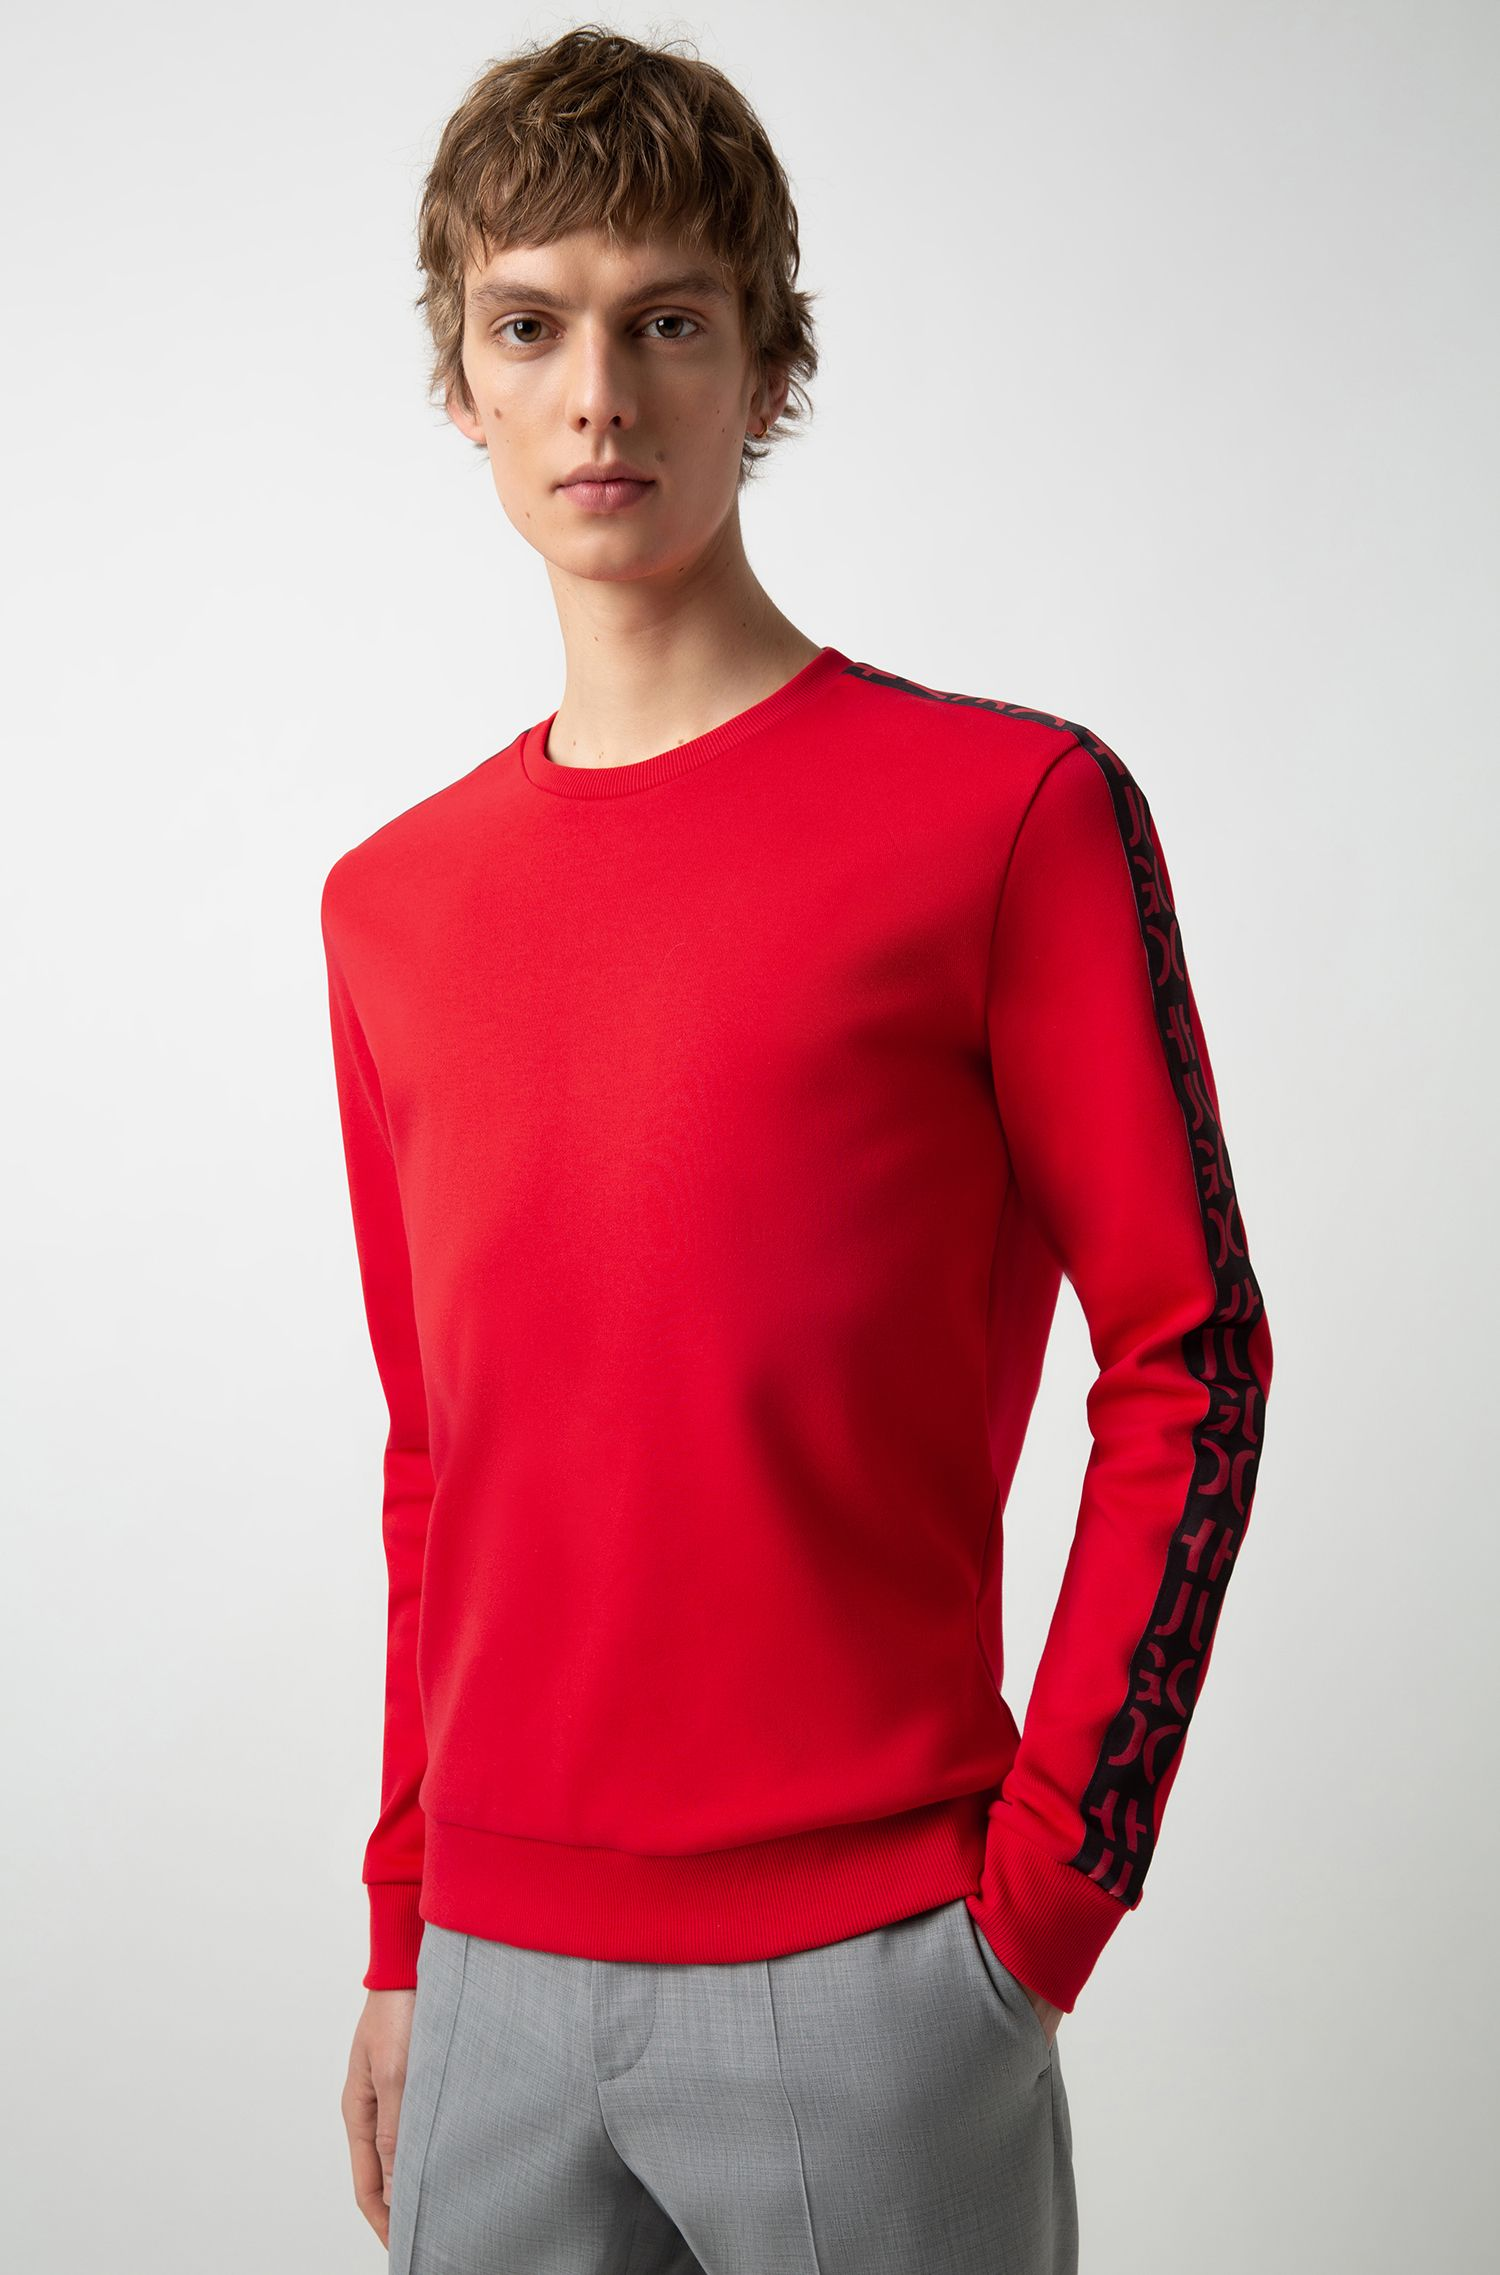 Interlock-cotton sweatshirt with logo-interpretation sleeve tape, Red